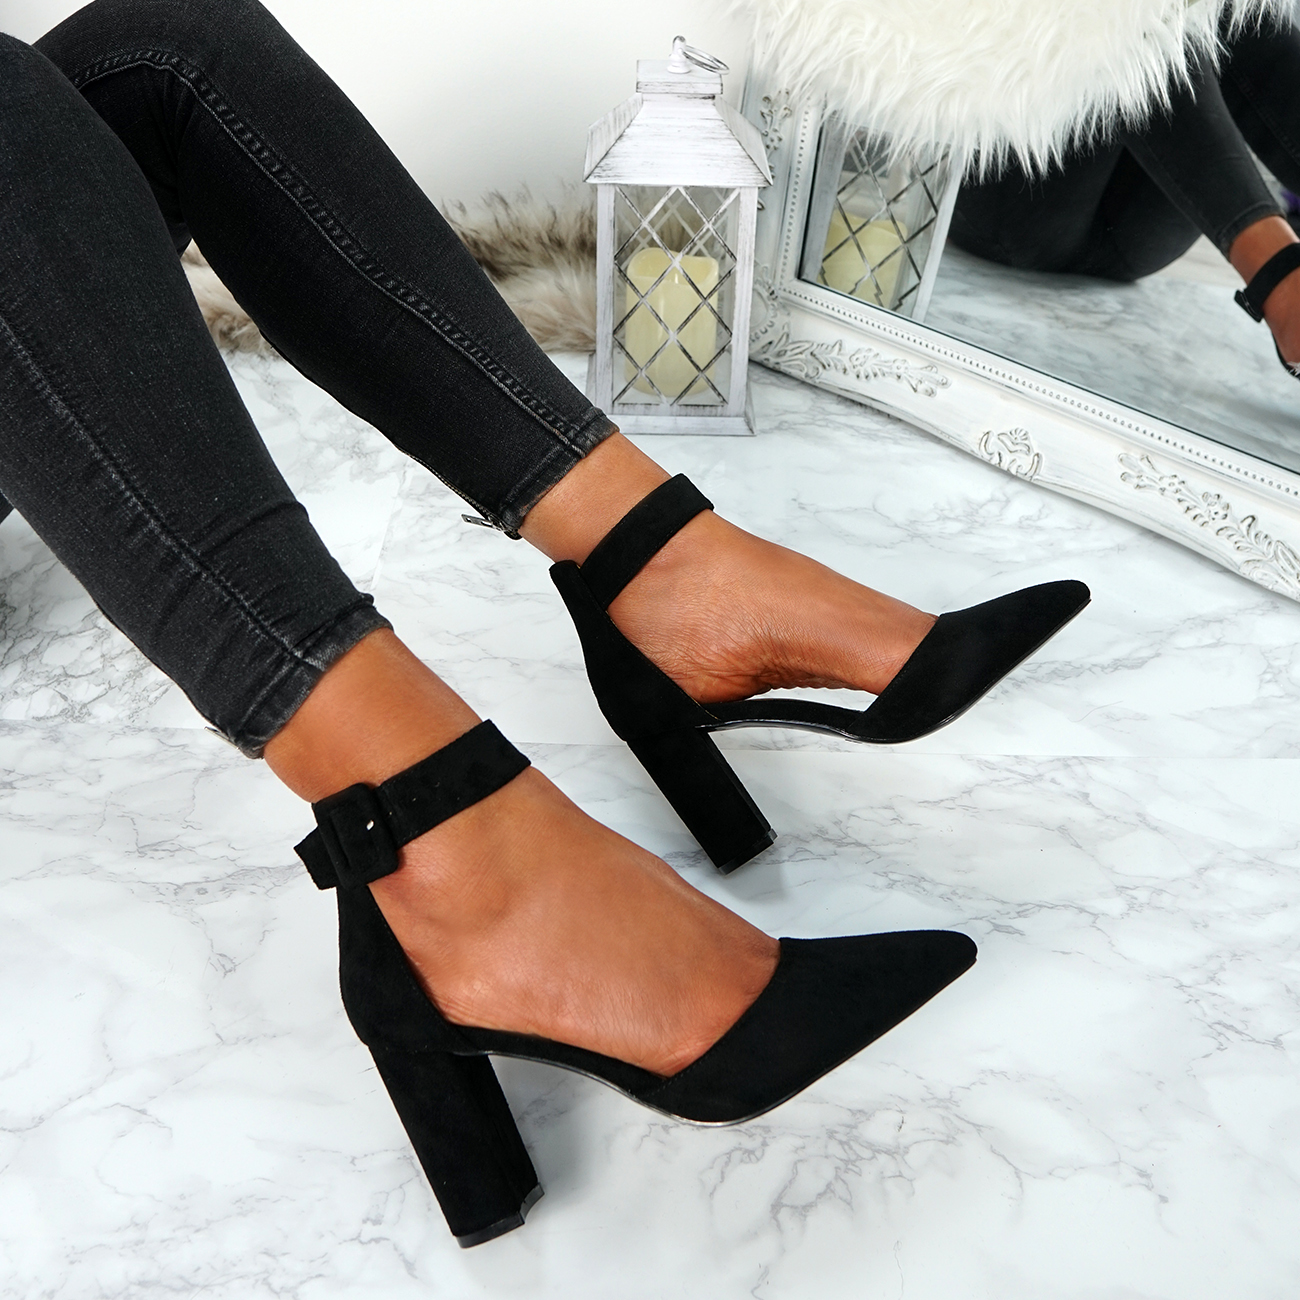 WOMENS-LADIES-HIGH-BLOCK-HEEL-ANKLE-STRAP-PUMPS-POINTED-TOE-PARTY-SHOES-SIZE